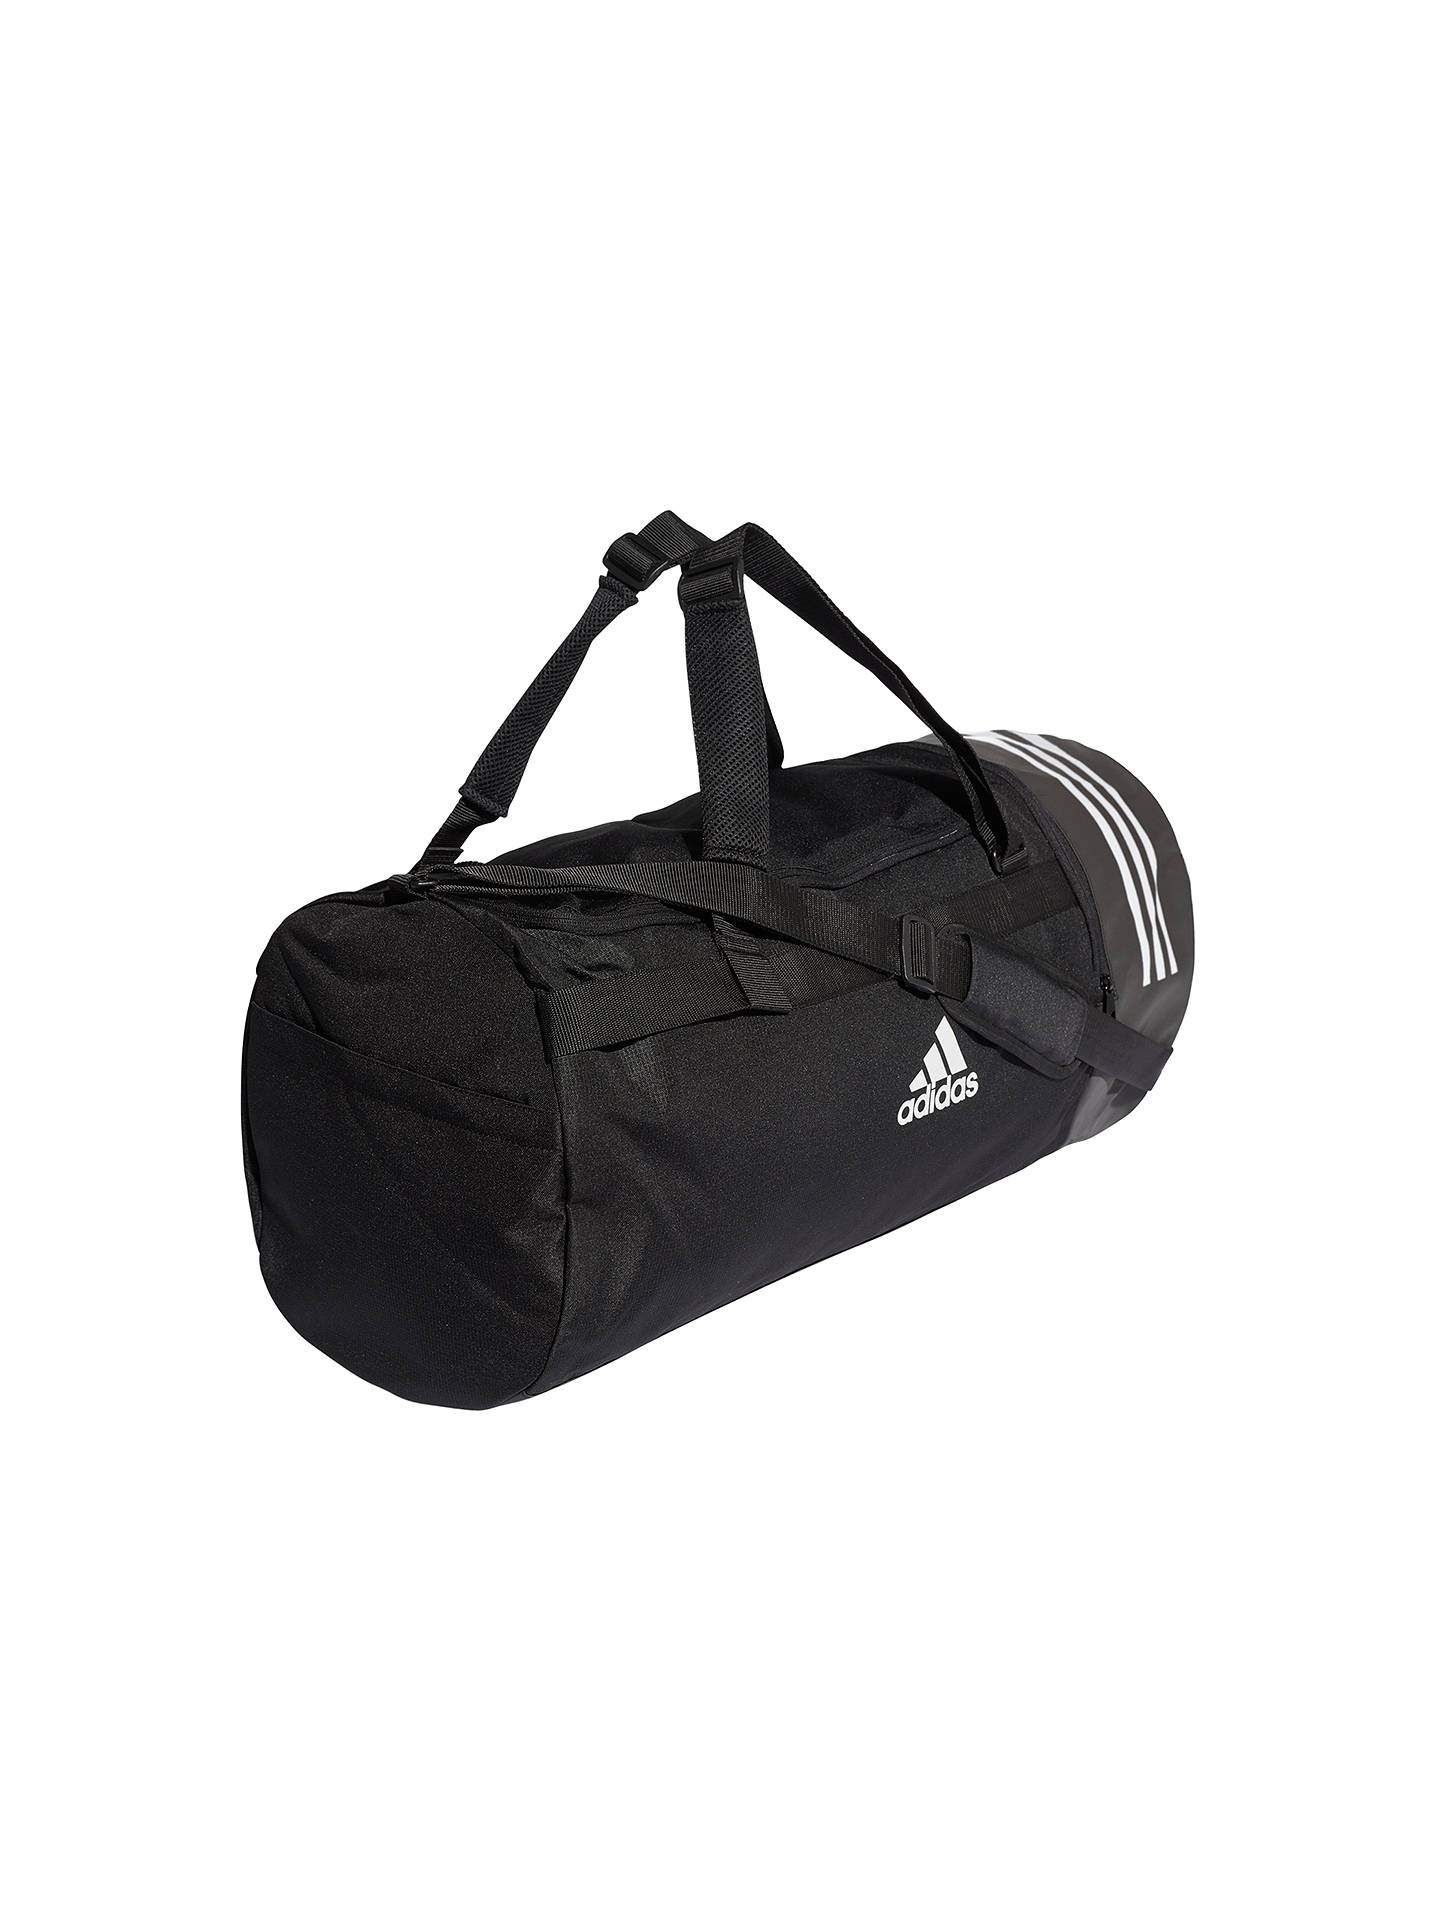 Buy adidas Convertible 3-Stripes Duffle Bag, Large, Black Online at johnlewis.com